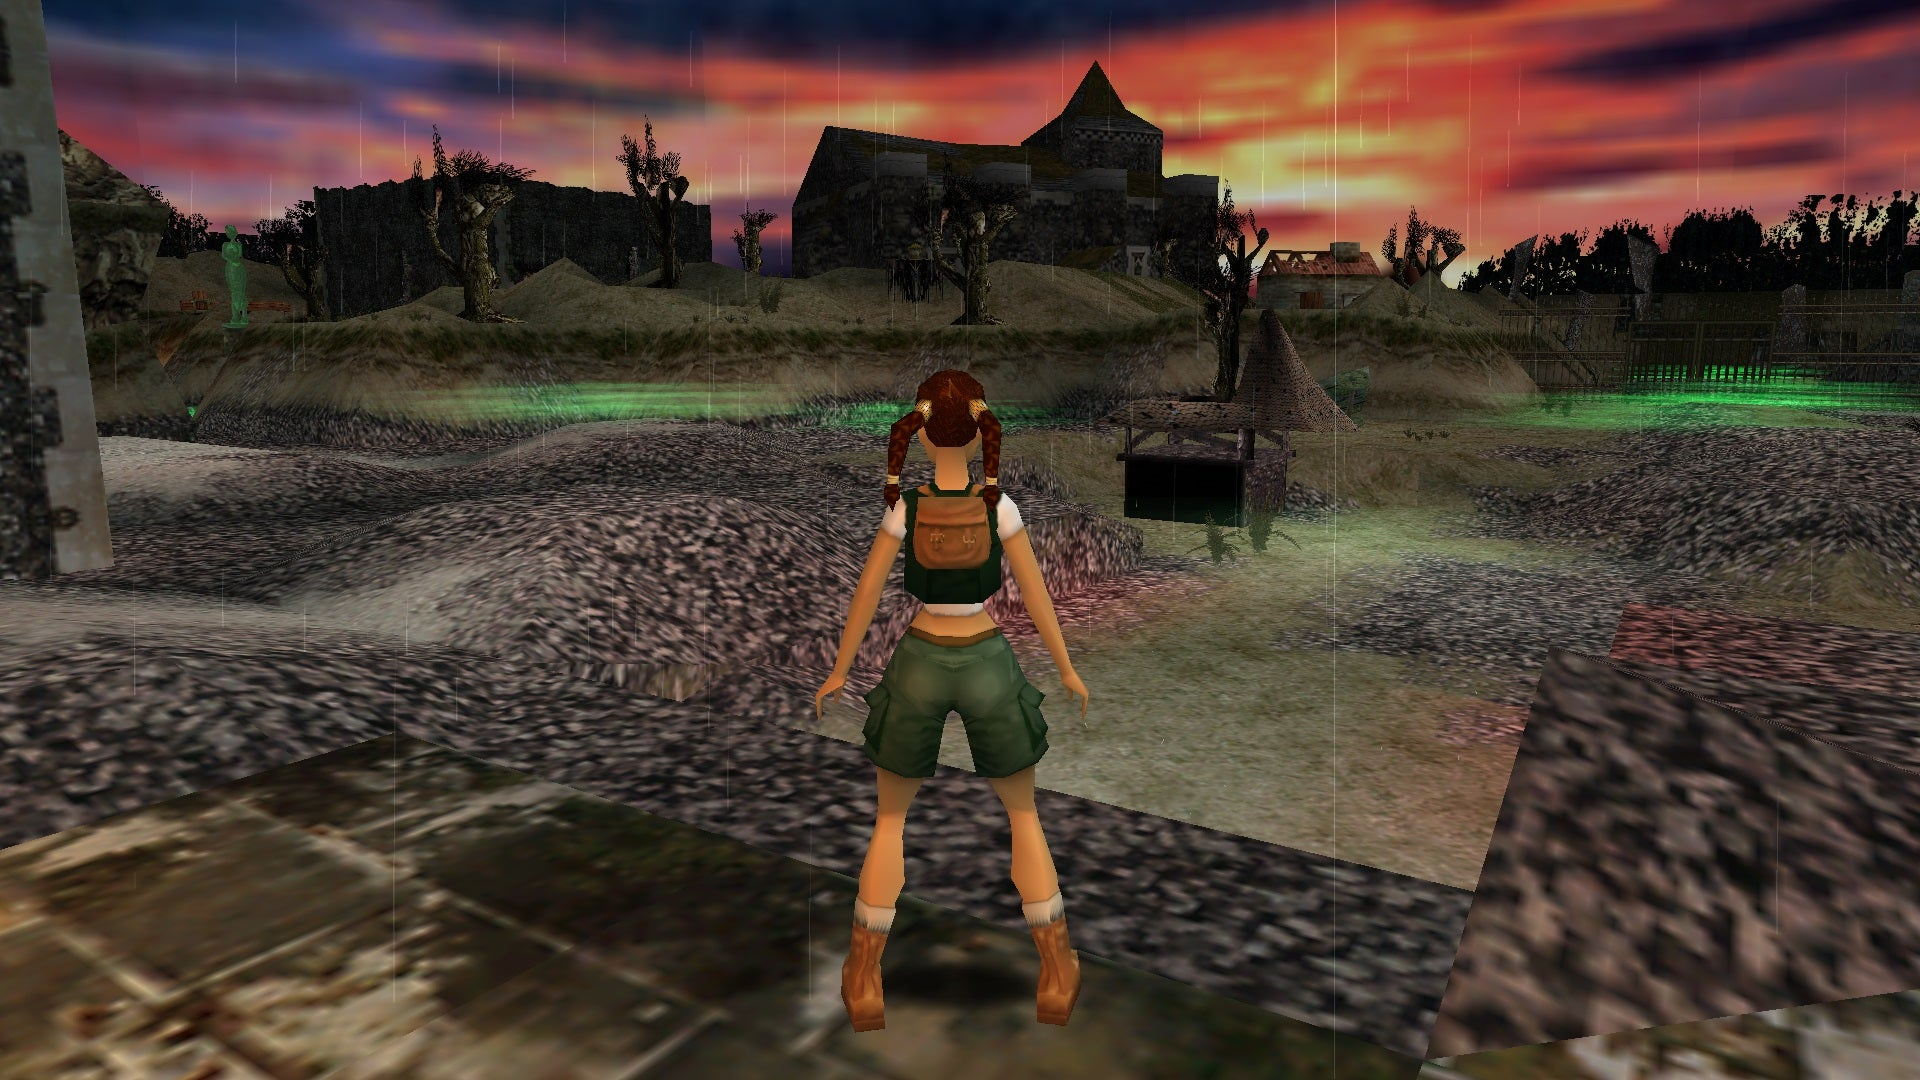 A screenshot from the Tomb Raider custom level called The Cursed Templar